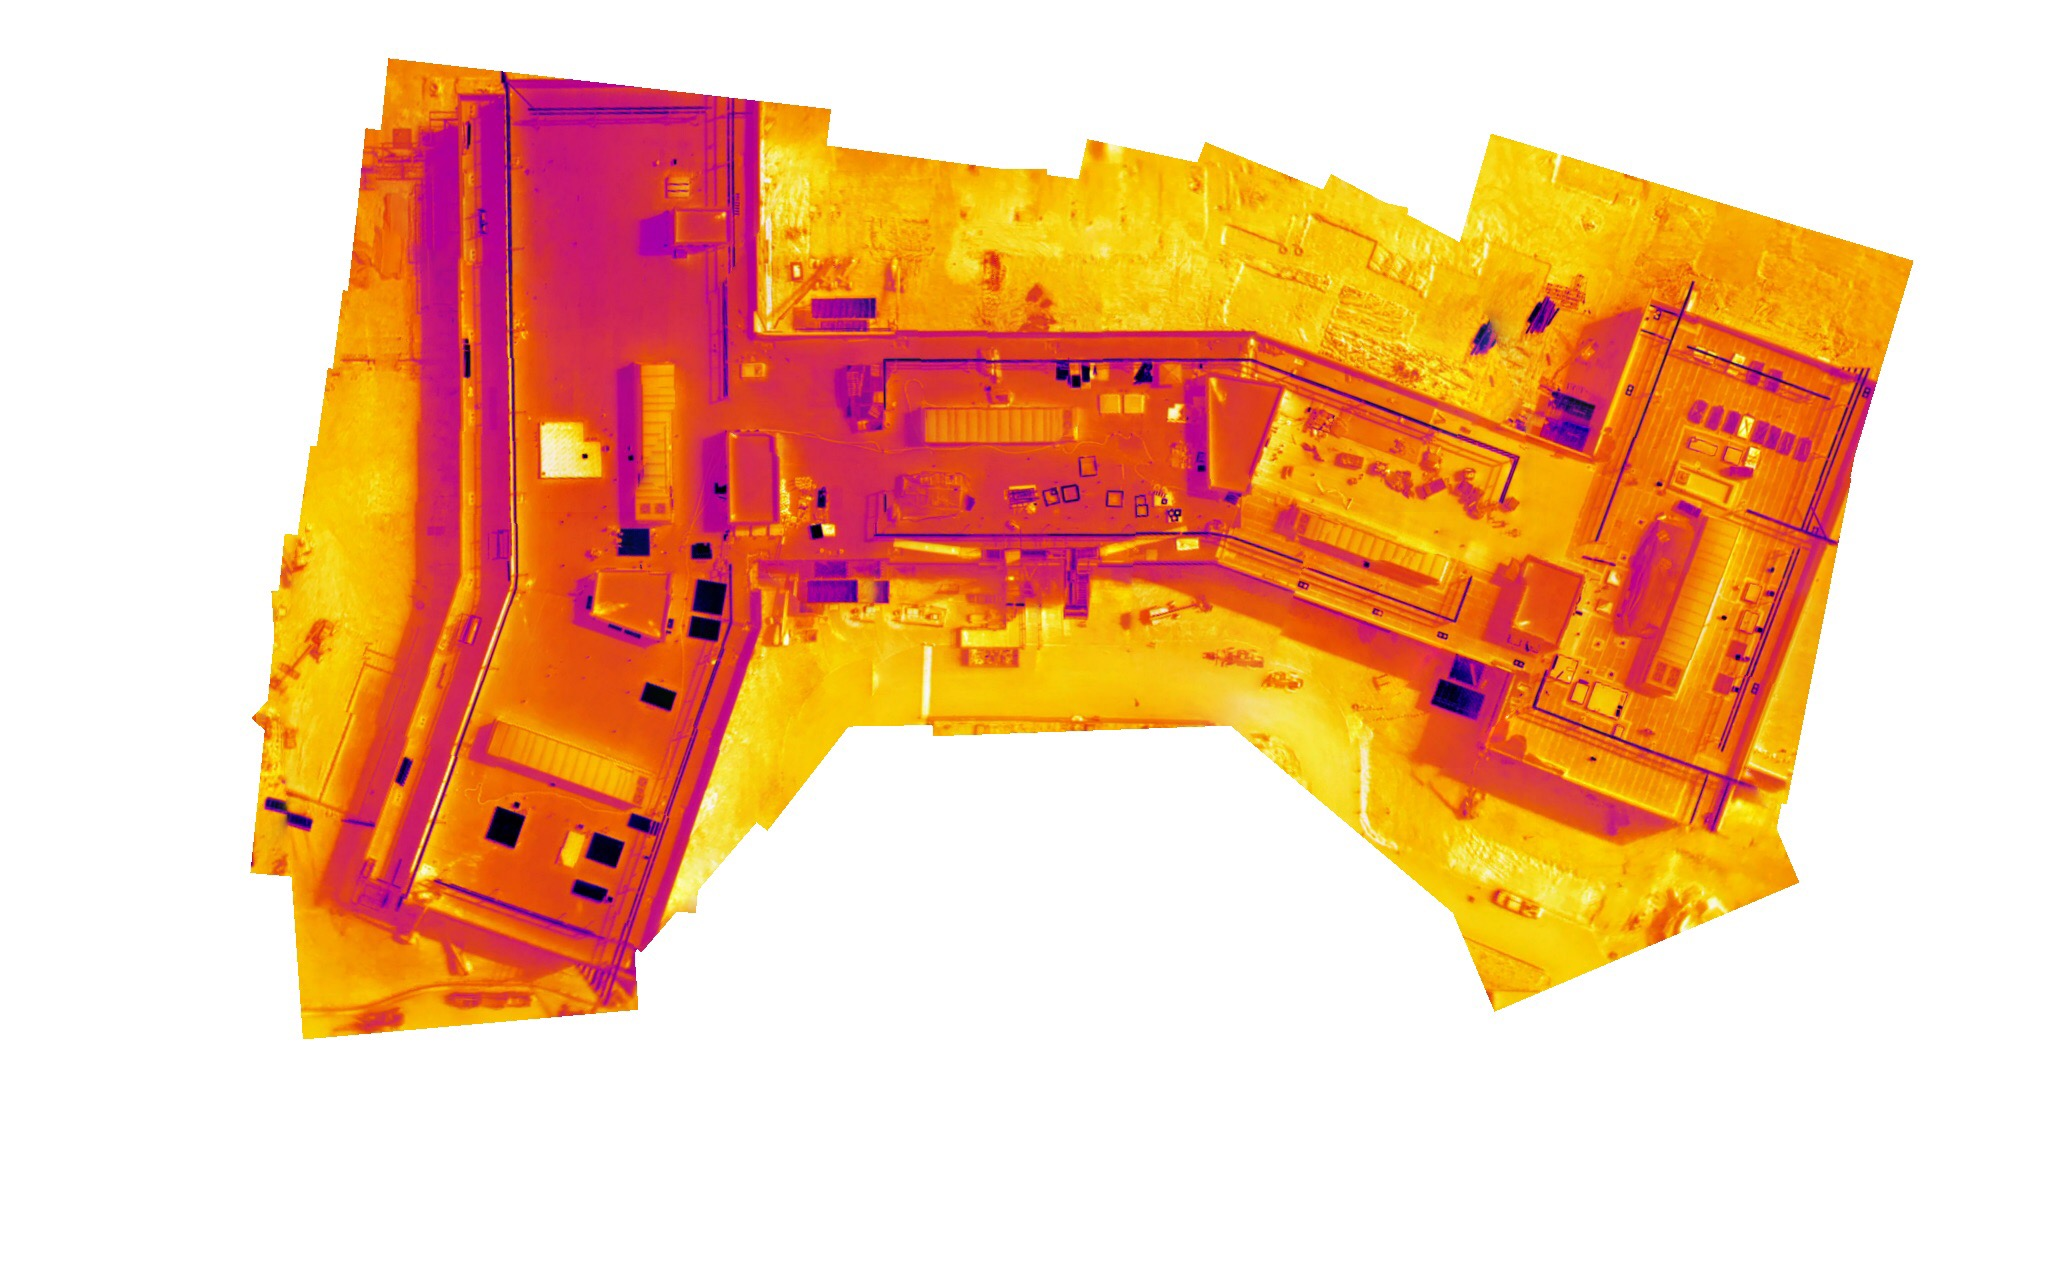 Here is an example of a Thermal Live Map of the roof of a hospital that is under construction.